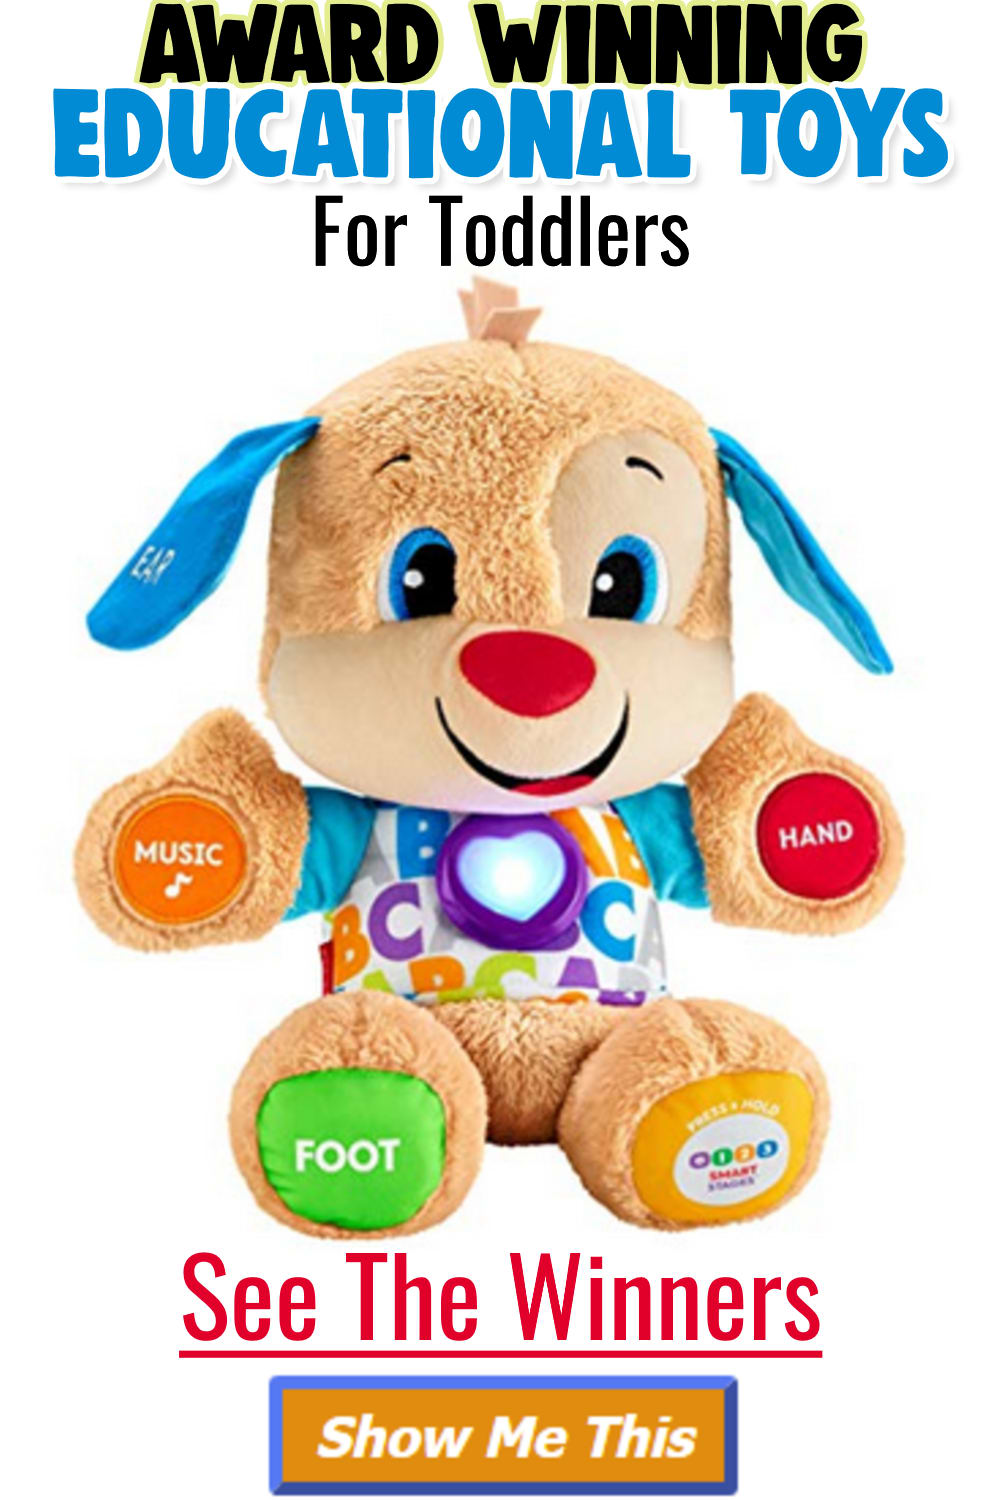 Award Winning Toys For Toddlers 2021 Educational Toys Winners Ages 1 2 3 Award Winning Toys Learning Toys For Toddlers Best Educational Toys